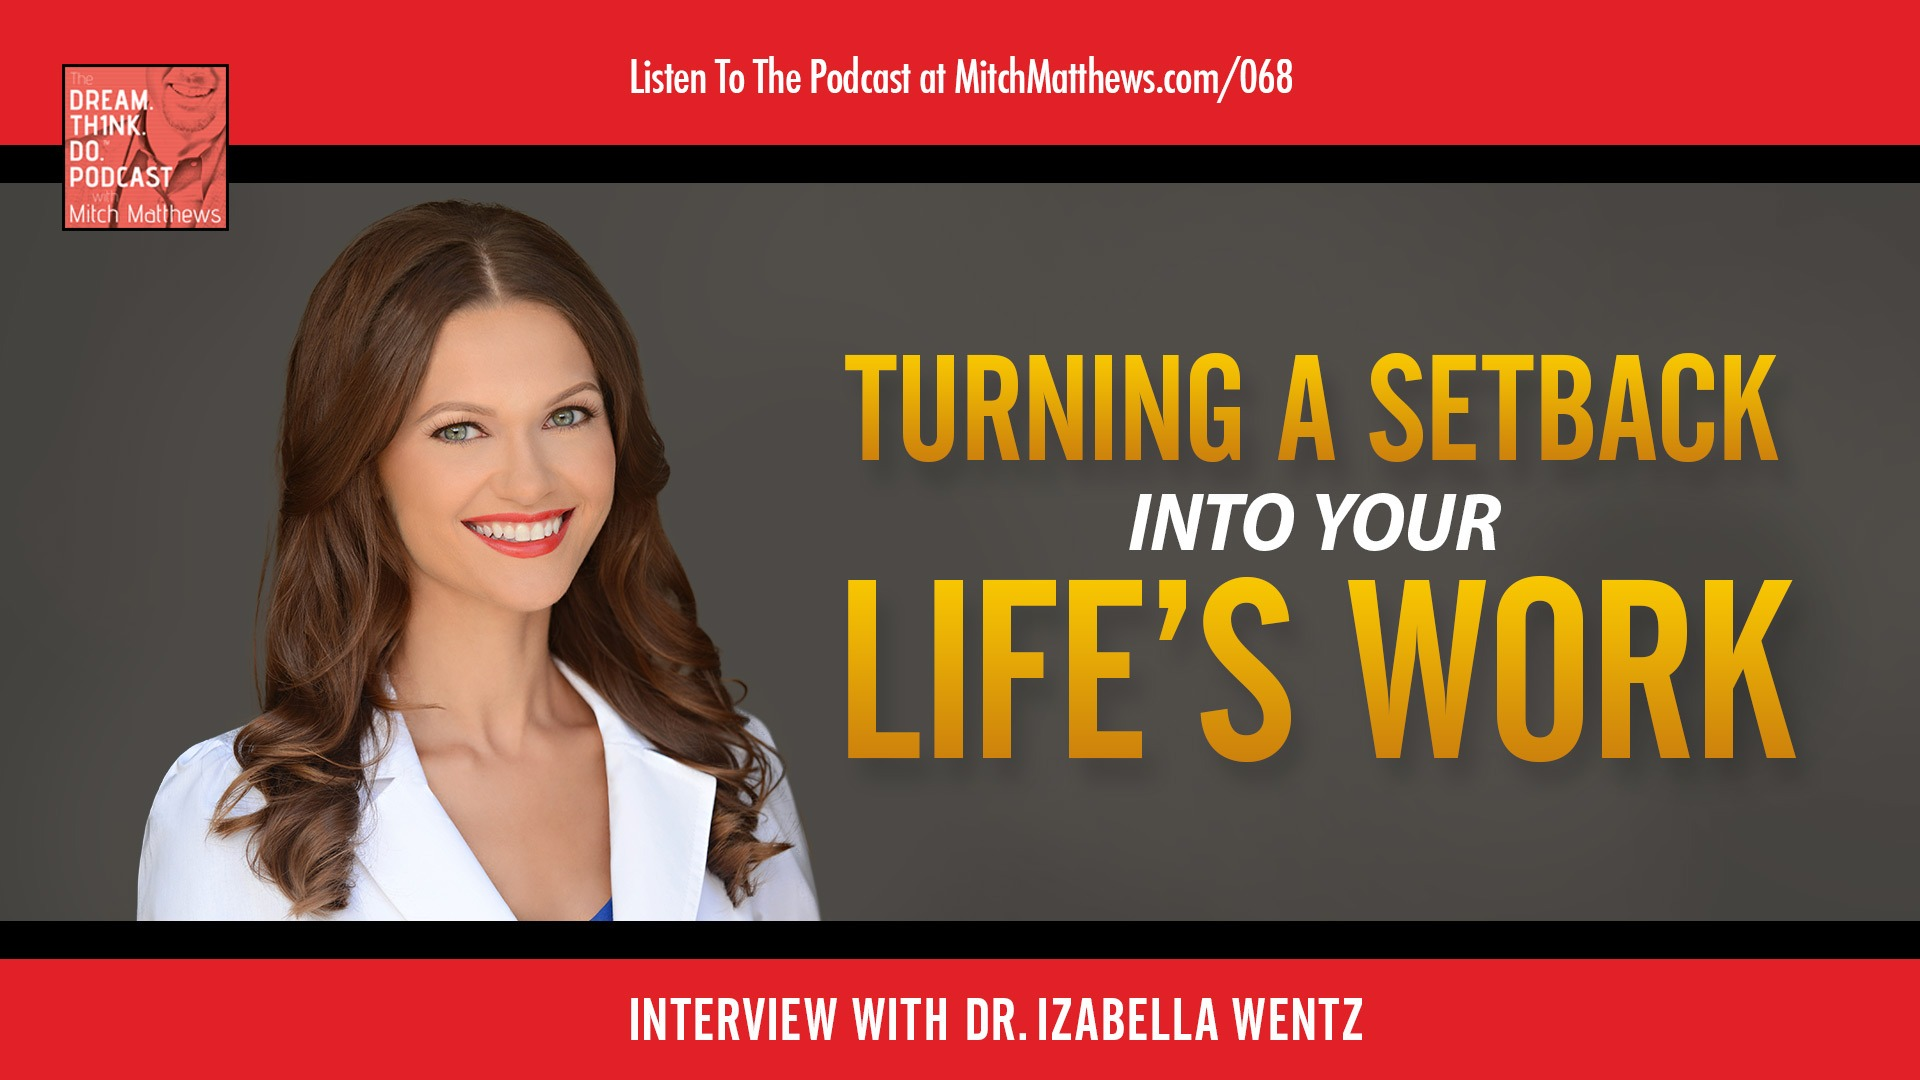 Dr. Izabella Wentz | Turning a setback into your life's work!